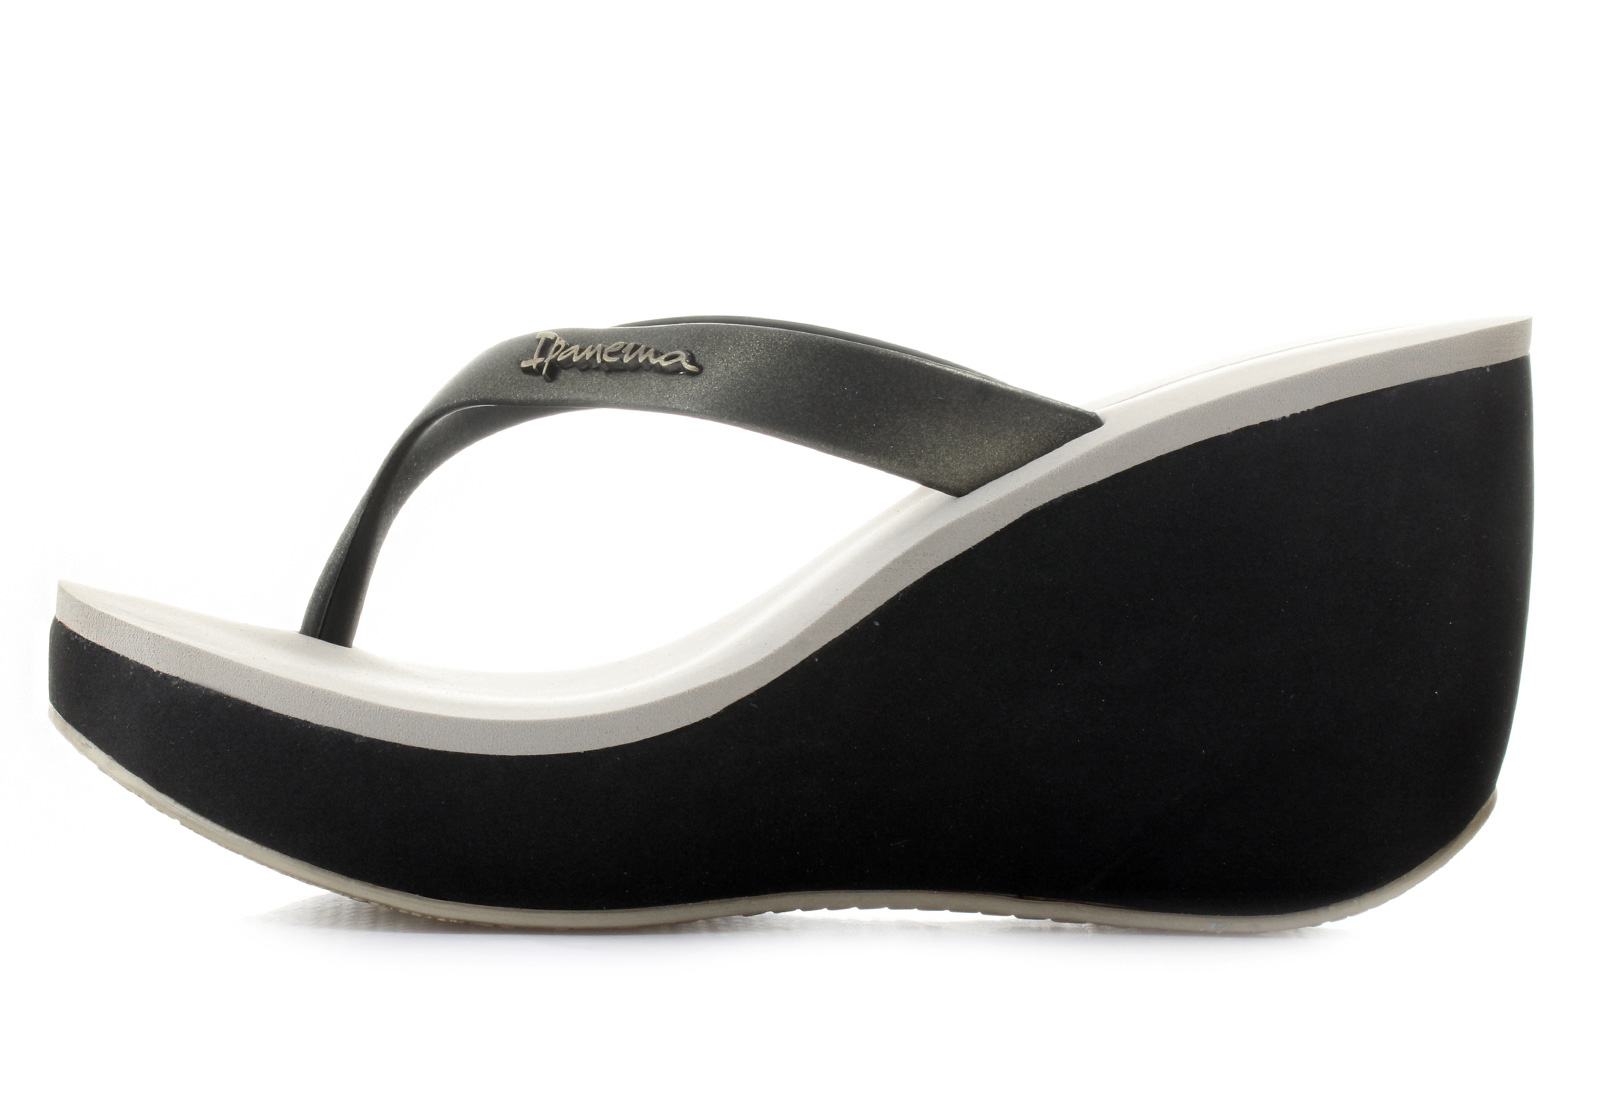 929ff41eef Ipanema Slippers - Samba - 81521-41063 - Online shop for sneakers ...